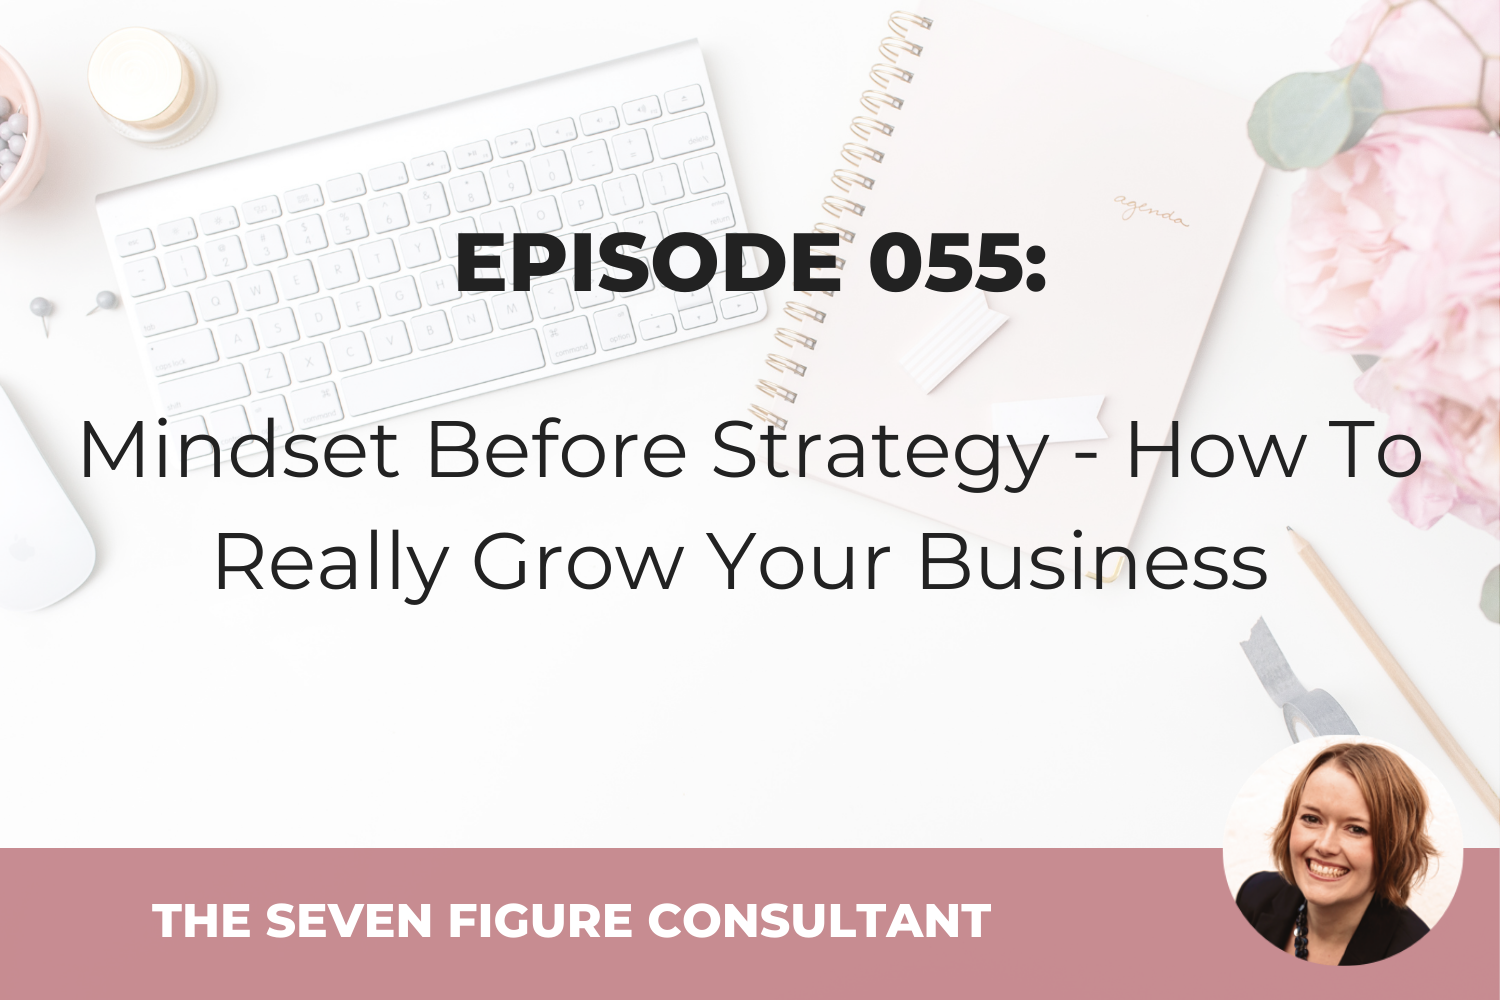 Episode 055: Mindset Before Strategy – How To Really Grow Your Business